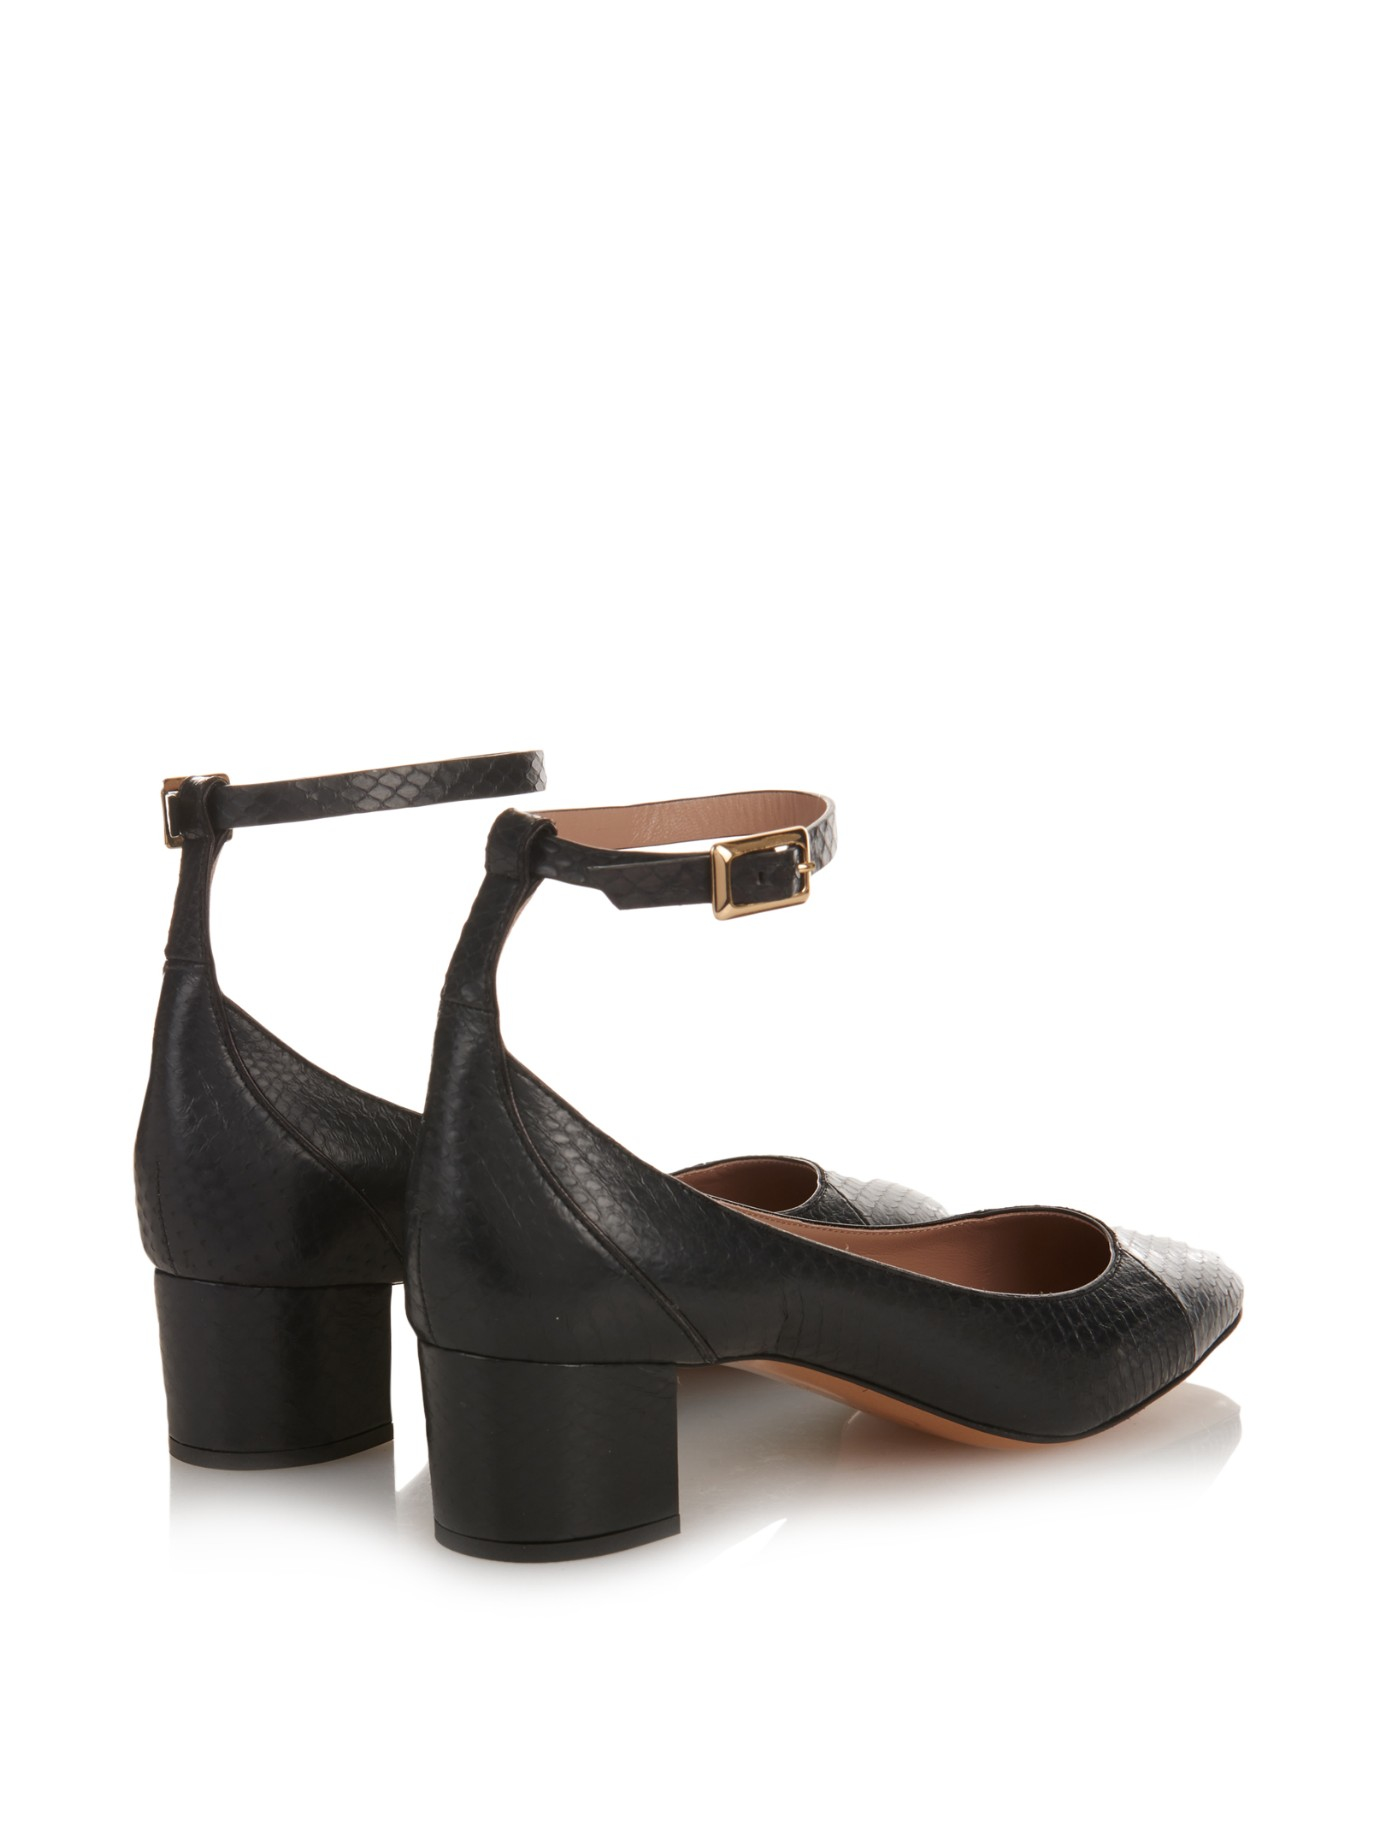 Chloé Snakeskin T-Strap Pumps countdown package online low shipping for sale sale clearance store discount great deals fSVAr